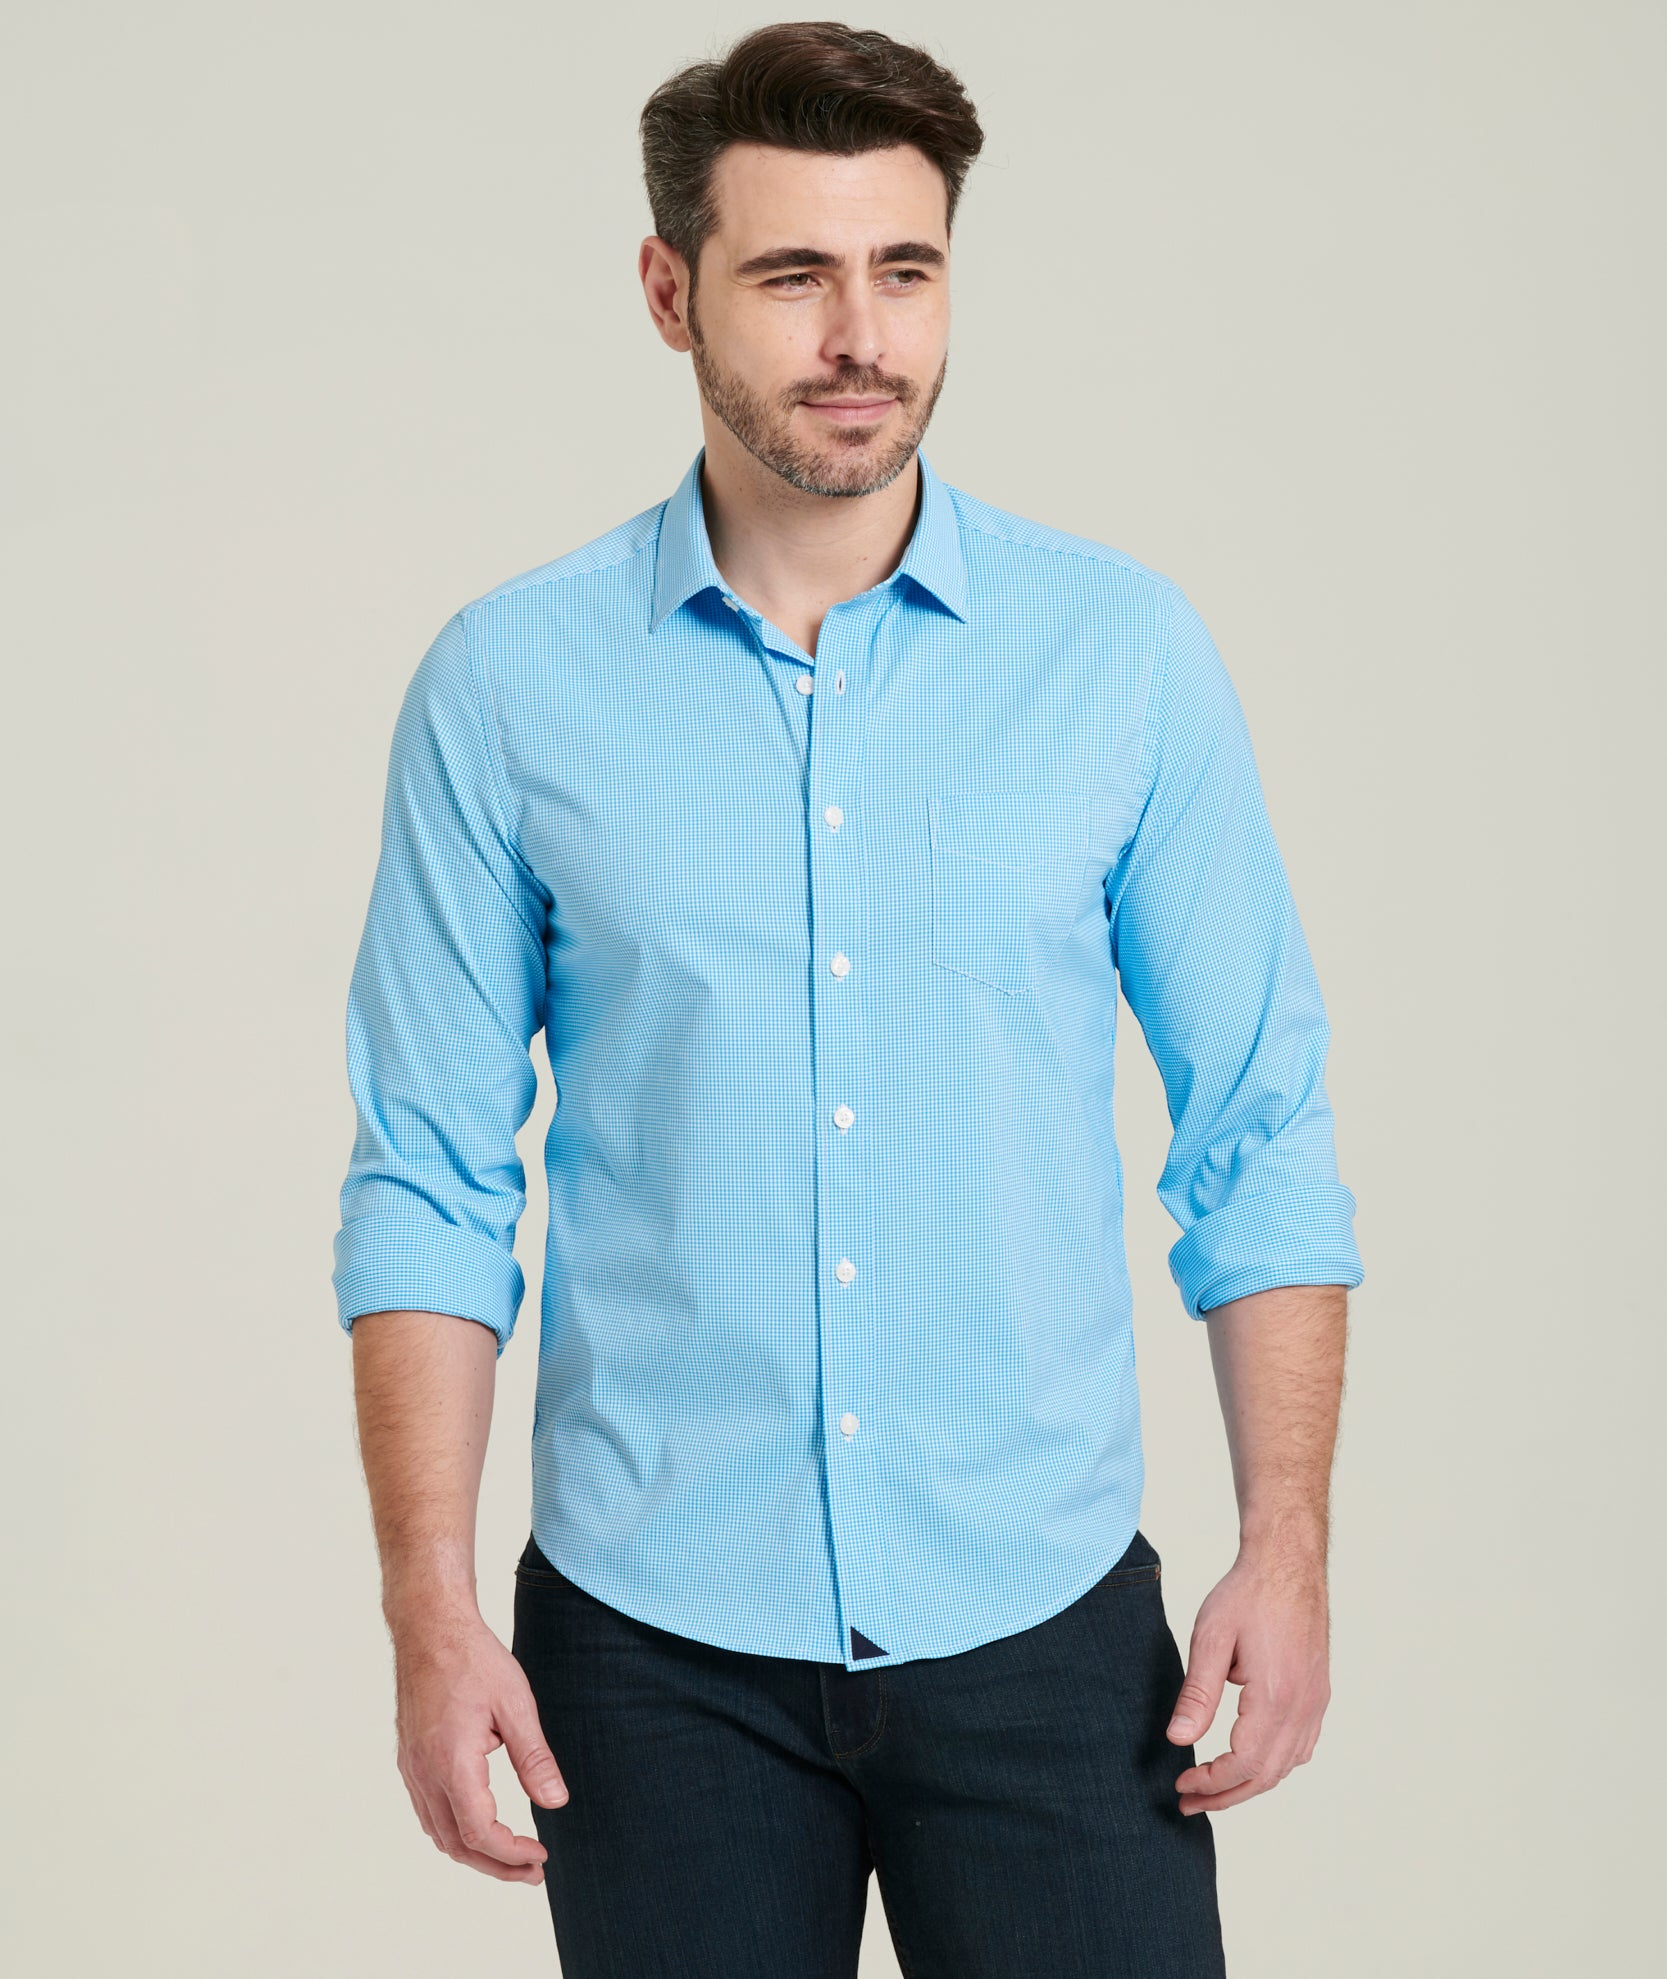 Juno Yvona - Dress Design: Dress Shirt With Jeans Untucked